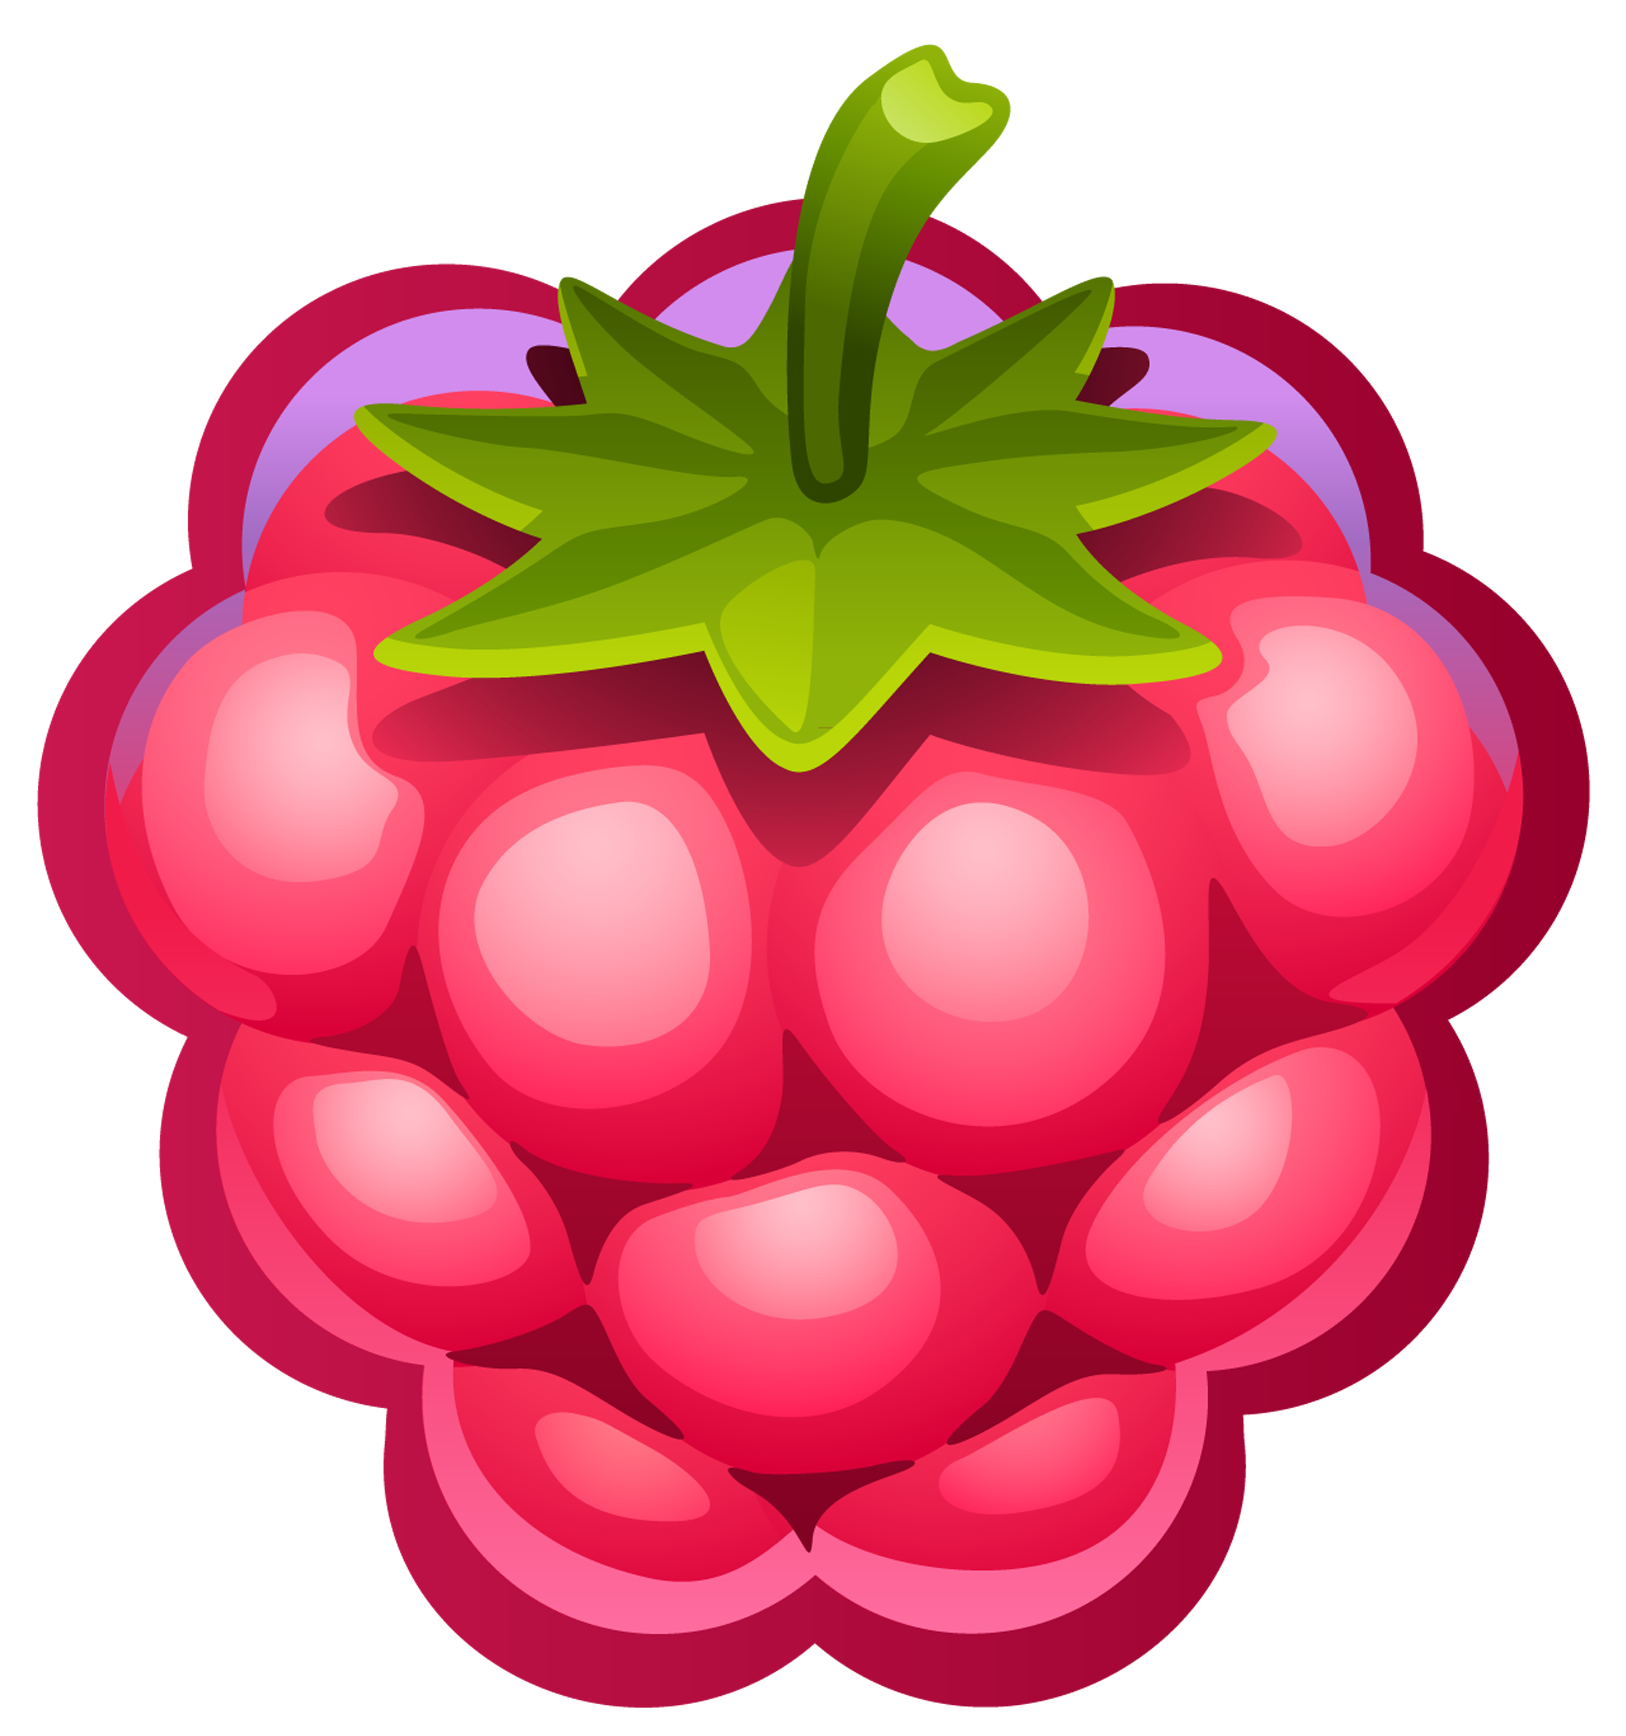 Large painted raspberry png. Berries clipart transparent background